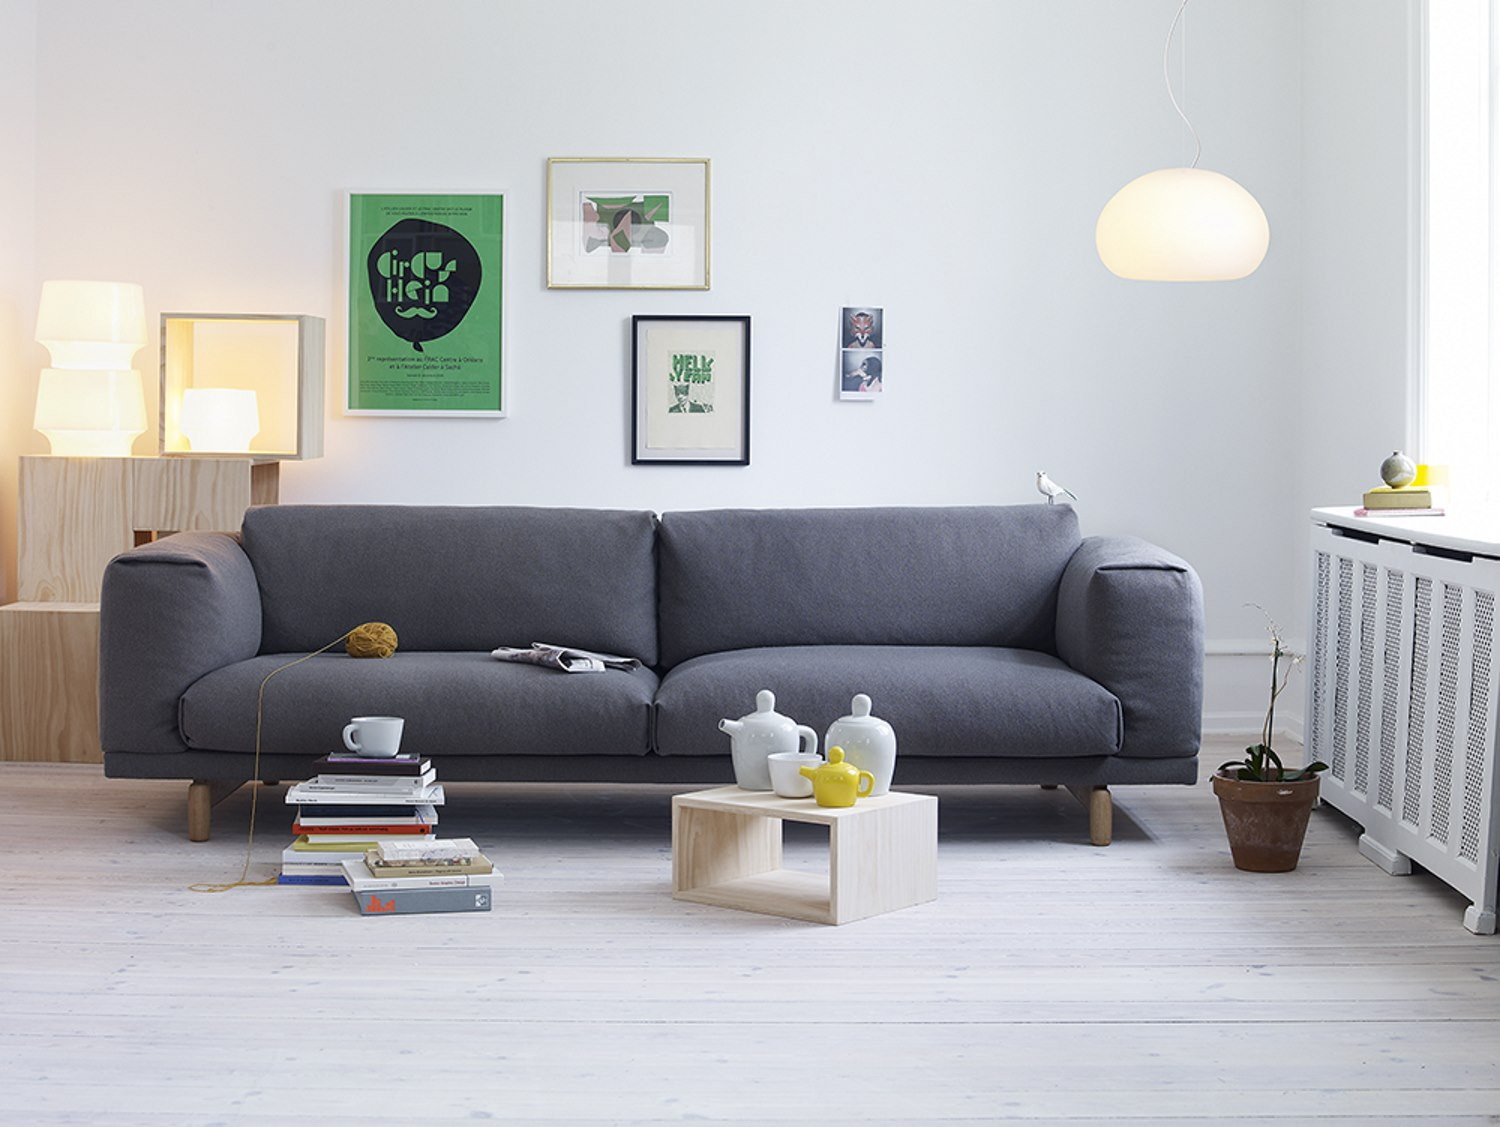 Full Size of Muuto Sofa Sofabord Xl Furniture List Outline Sale Uk Connect Review System Compose 2 Seater Sitzer Mit Abnehmbaren Bezug De Sede 3 Teilig Schlafsofa Sofa Muuto Sofa